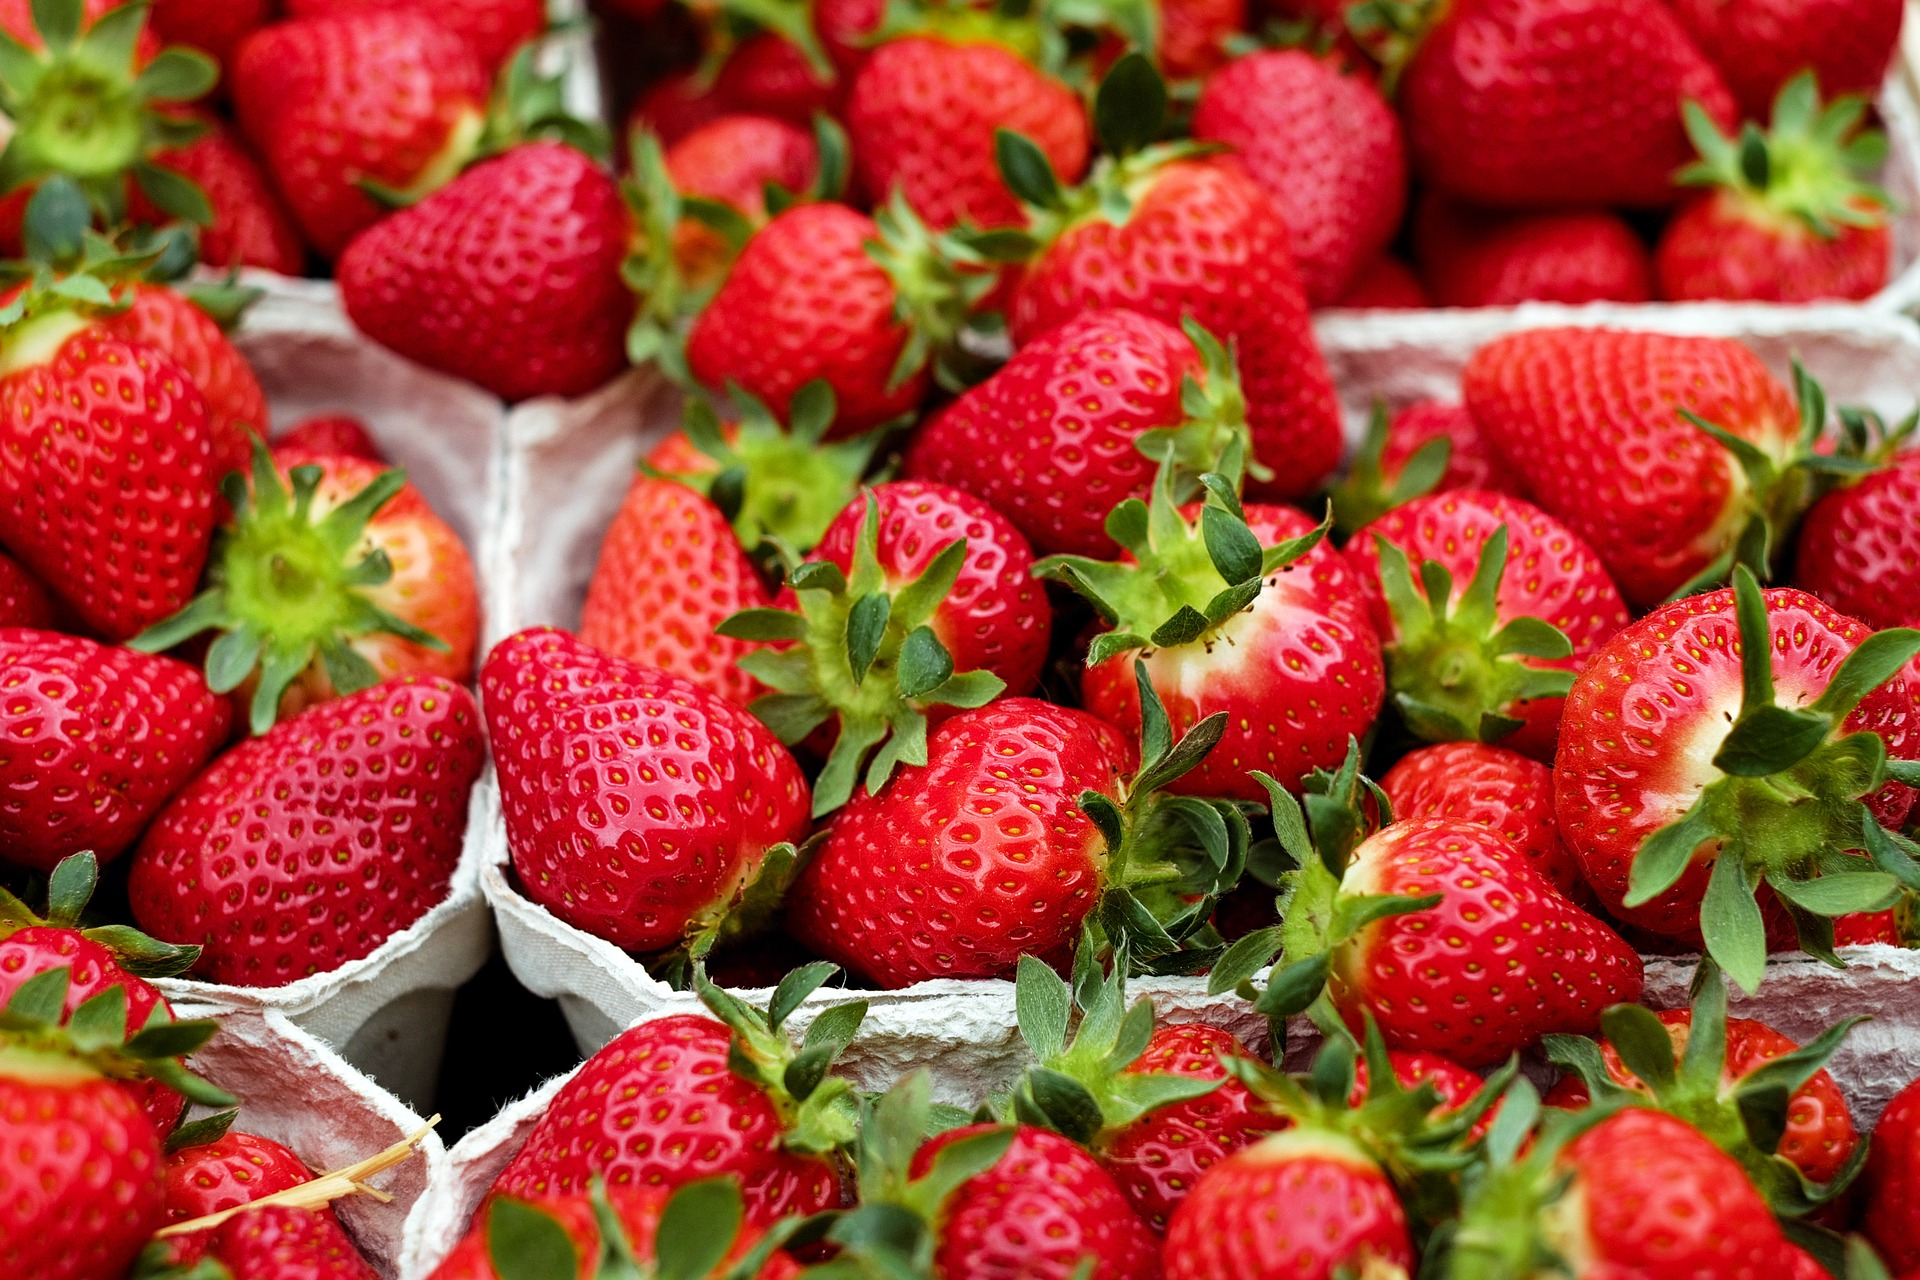 Calendar Of Holidays Everyday A Daily Listing Of Todays Holidays Checkiday Strawberries Planting Growing And Harvesting Strawberry